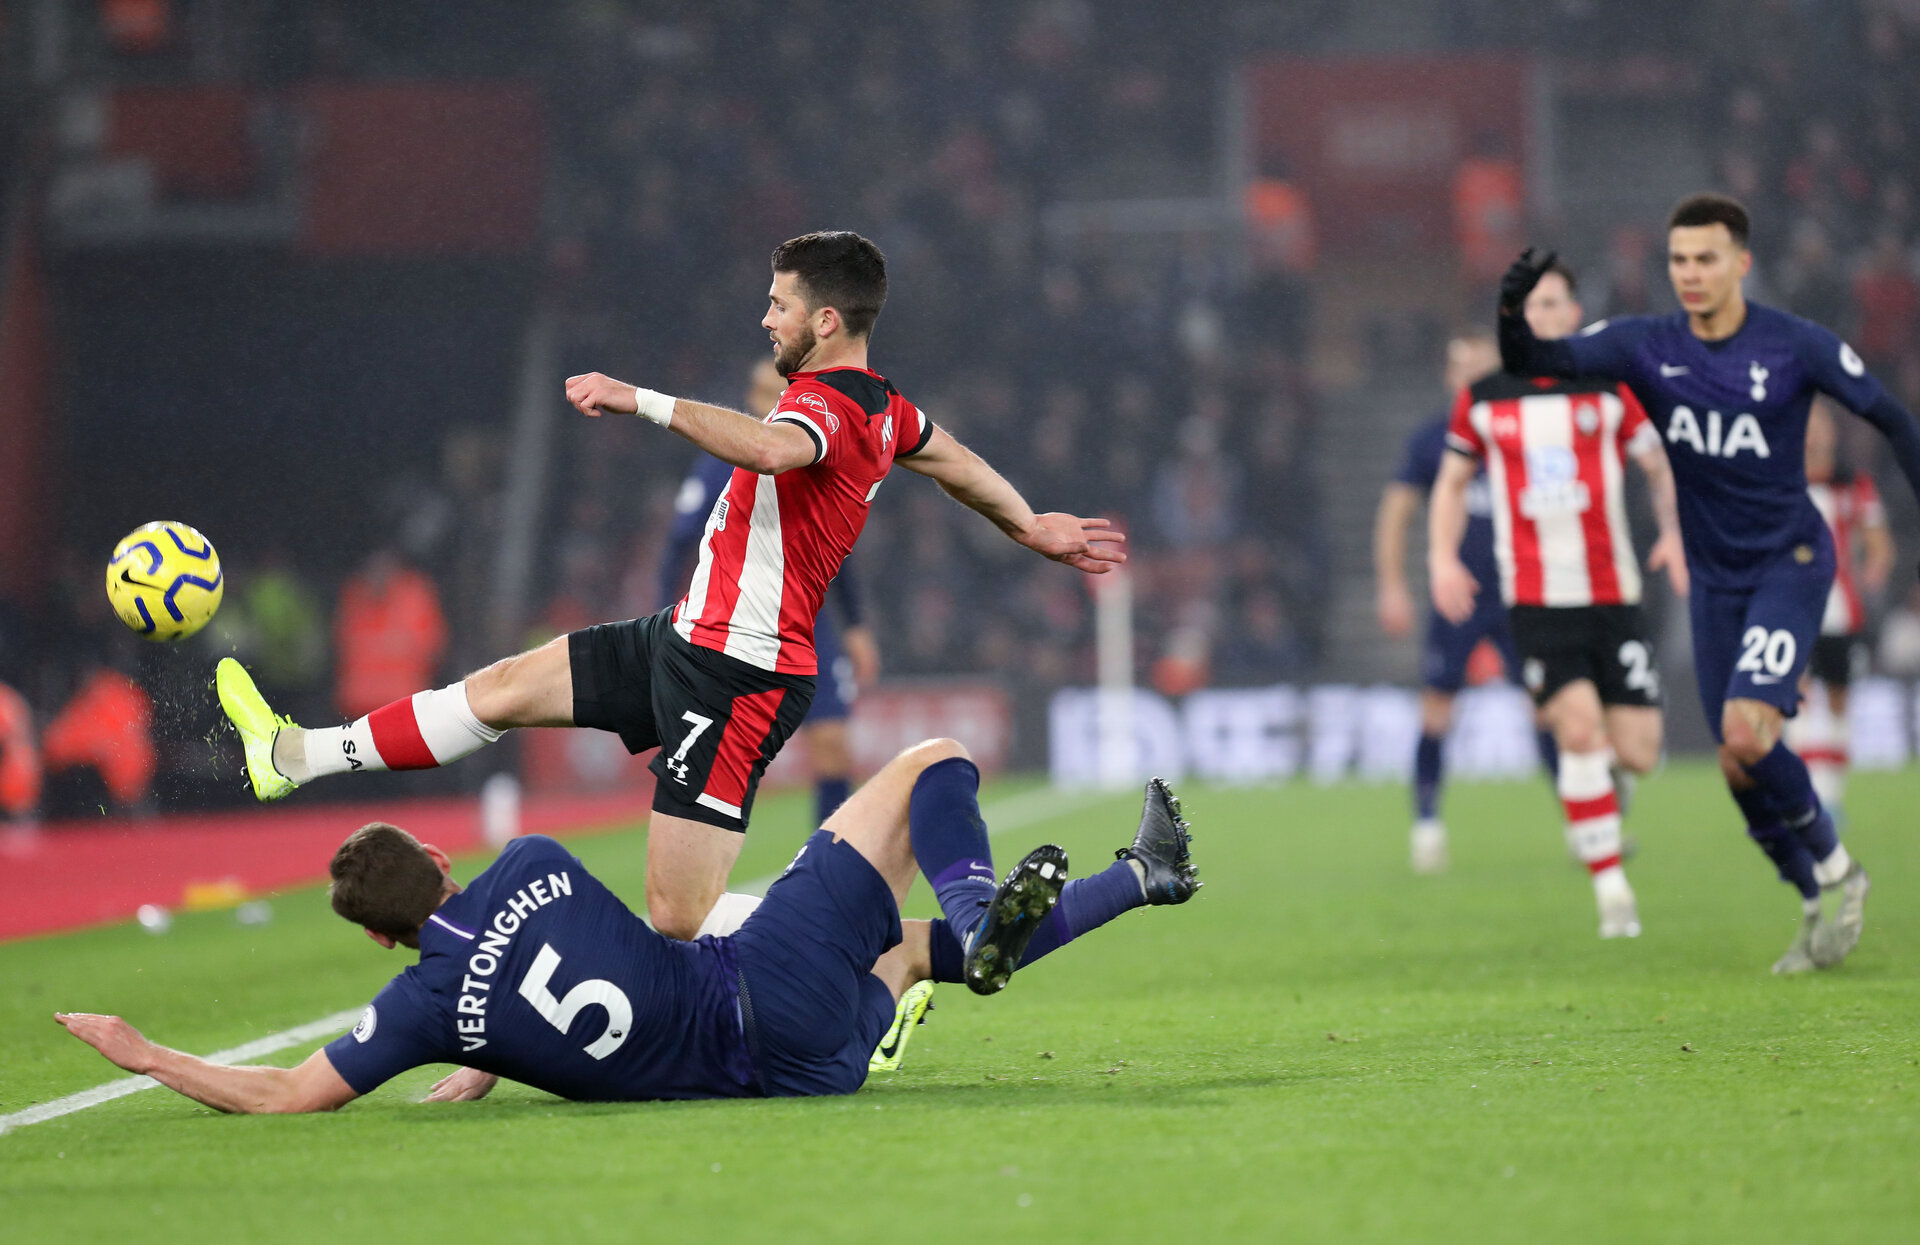 SOUTHAMPTON, ENGLAND - JANUARY 01: Shane Long during the Premier League match between Southampton FC and Tottenham Hotspur at St Mary's Stadium on January 1, 2020 in Southampton, United Kingdom. (Photo by Chris Moorhouse/Southampton FC via Getty Images)